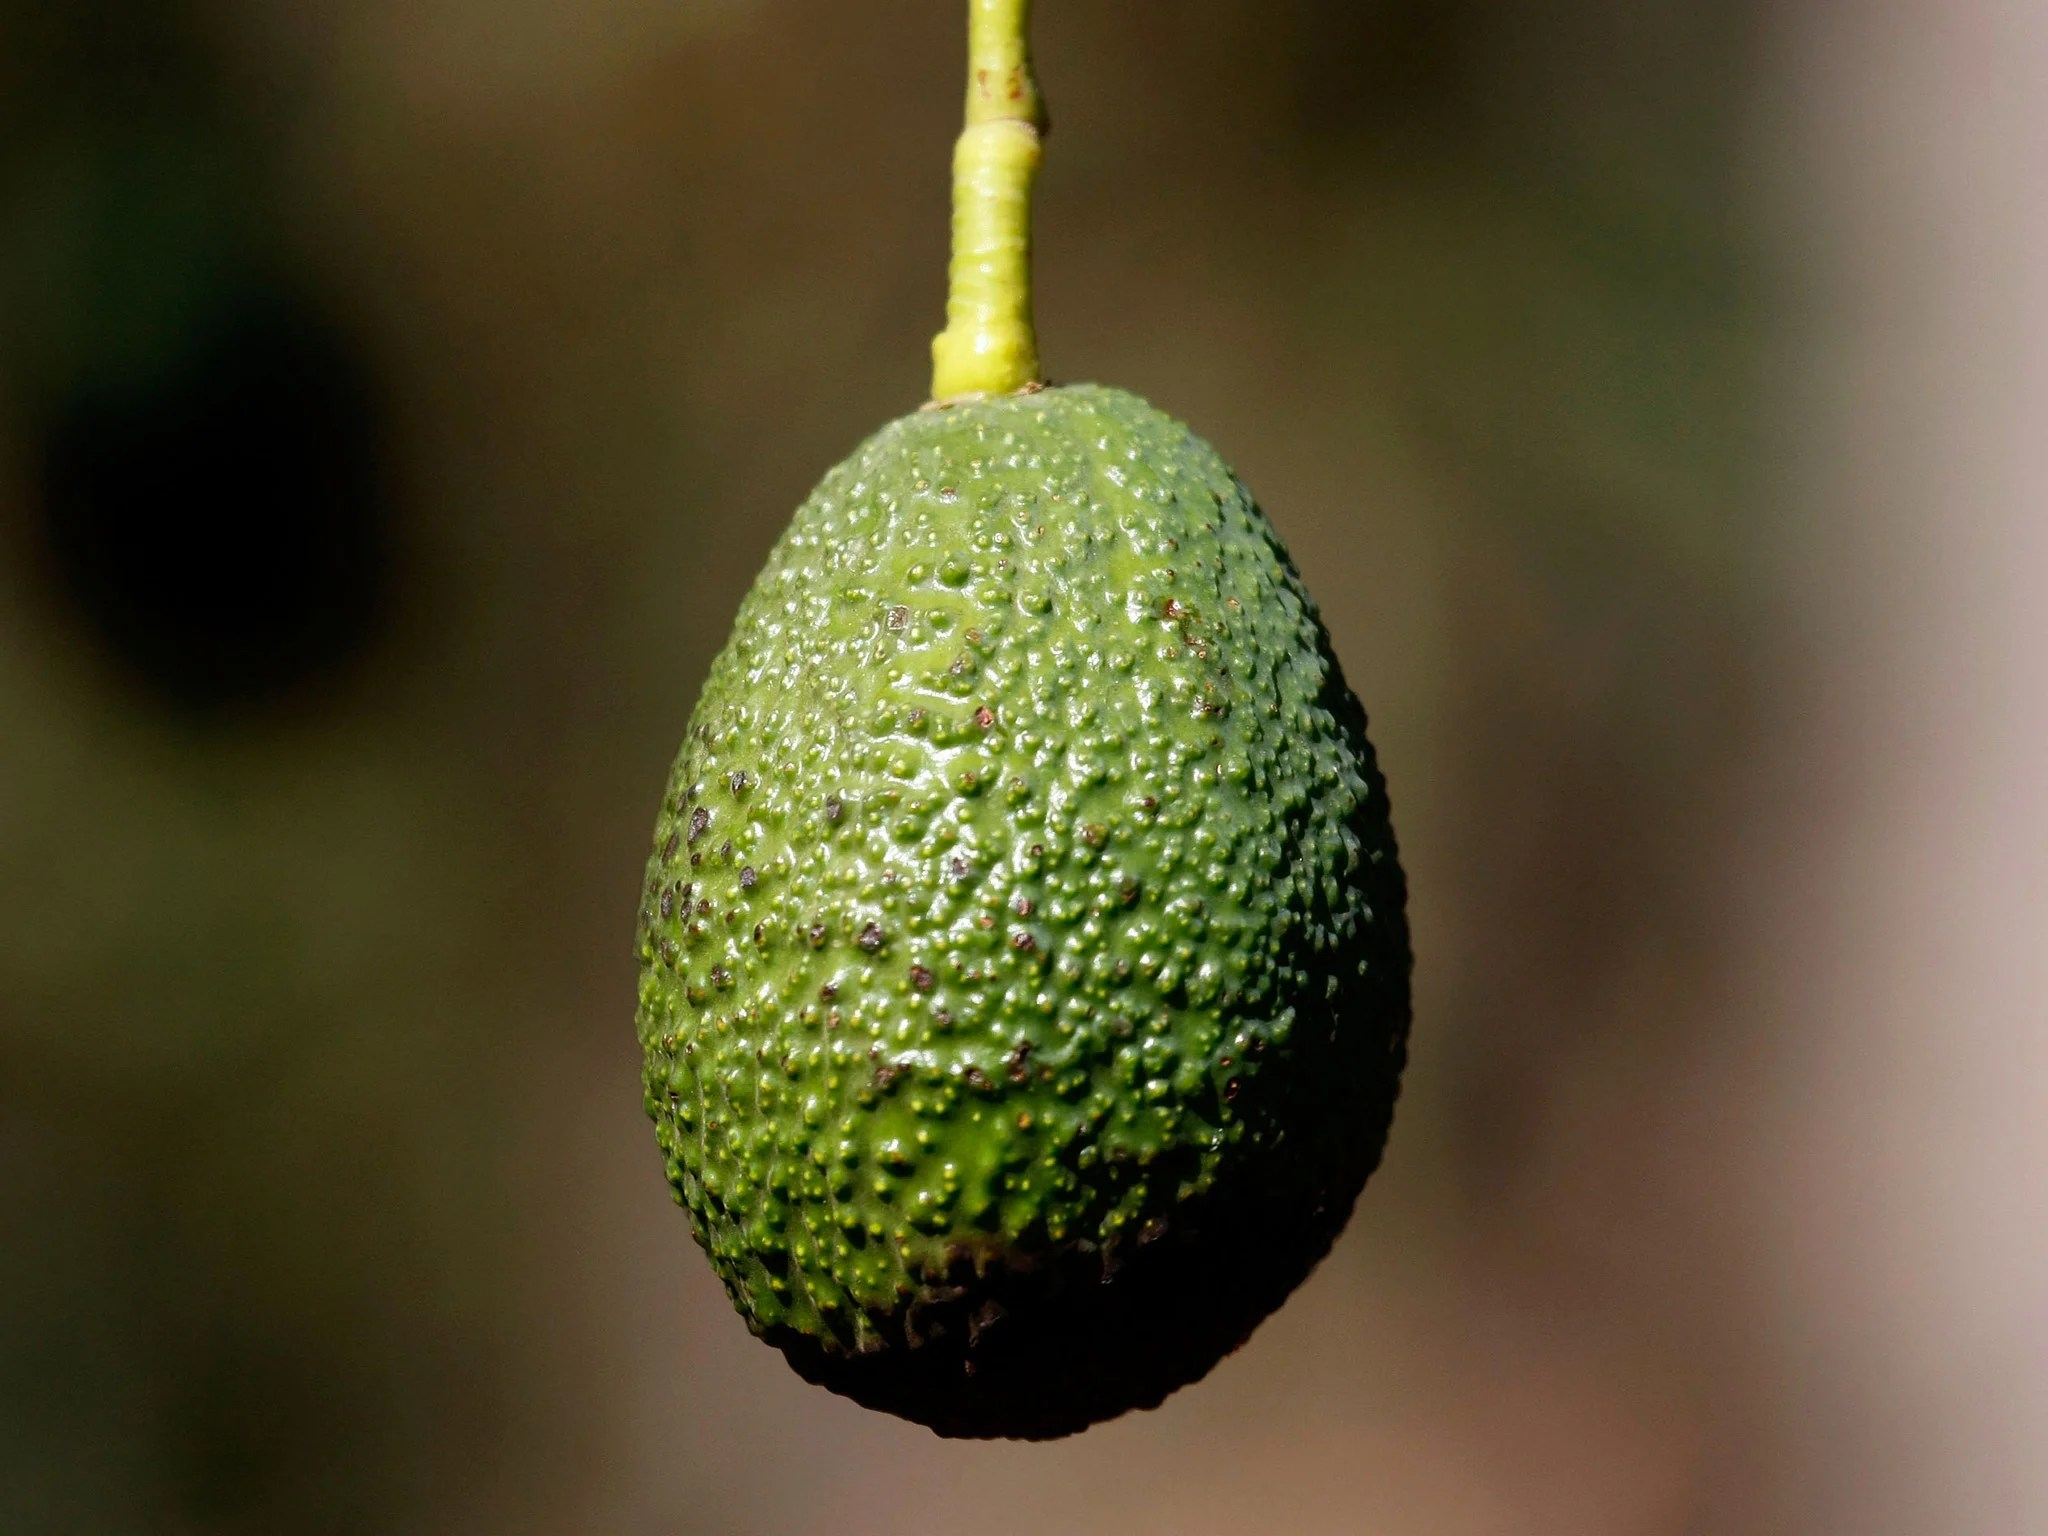 Avocado Boom Pinterest Avocados Revealed As The Most Pinned Food Trend On The